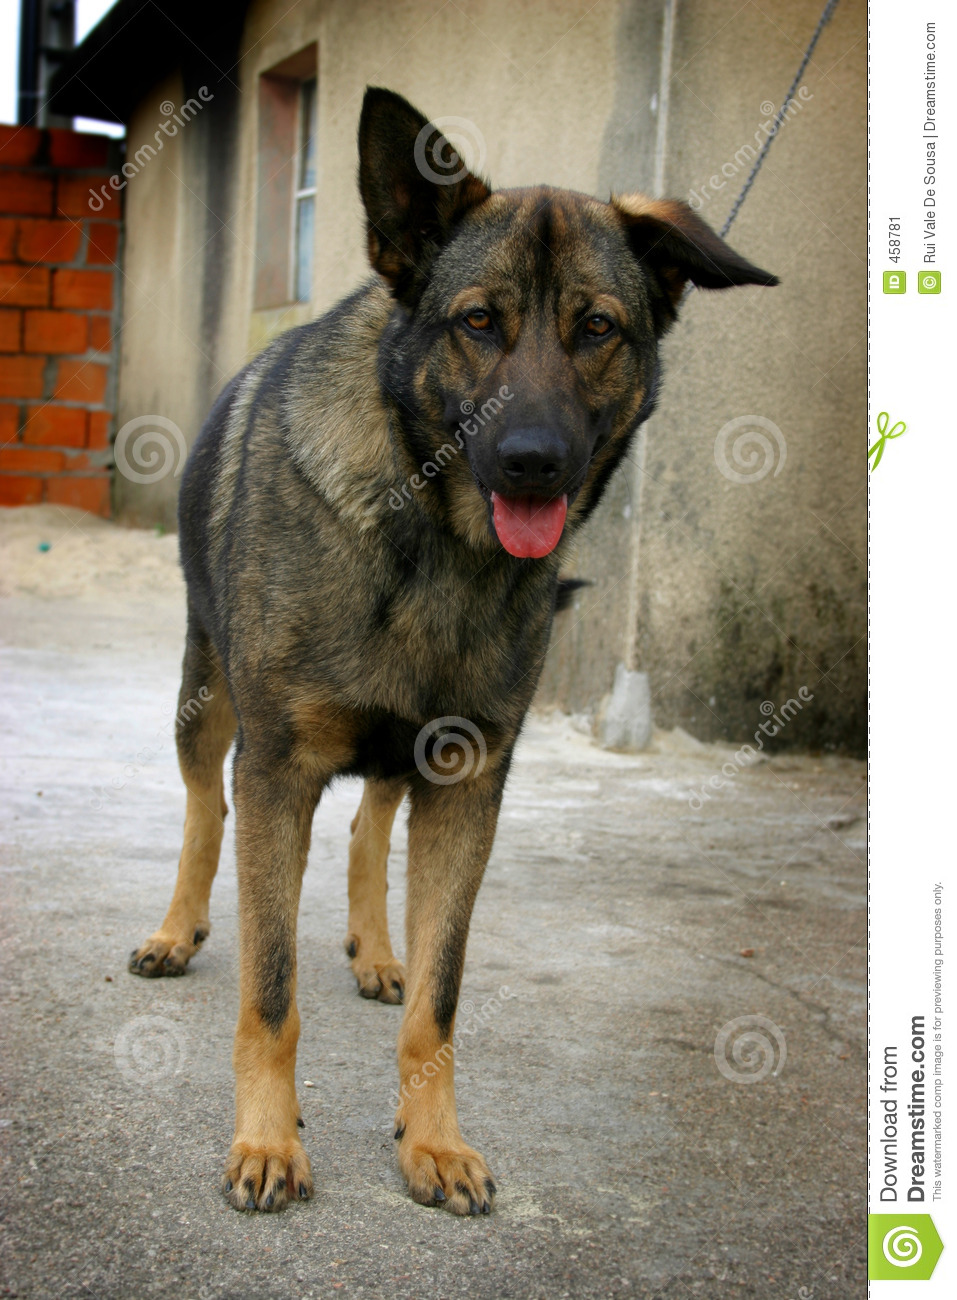 Download Dog stock image. Image of canines, animal, puppy, guard - 458781